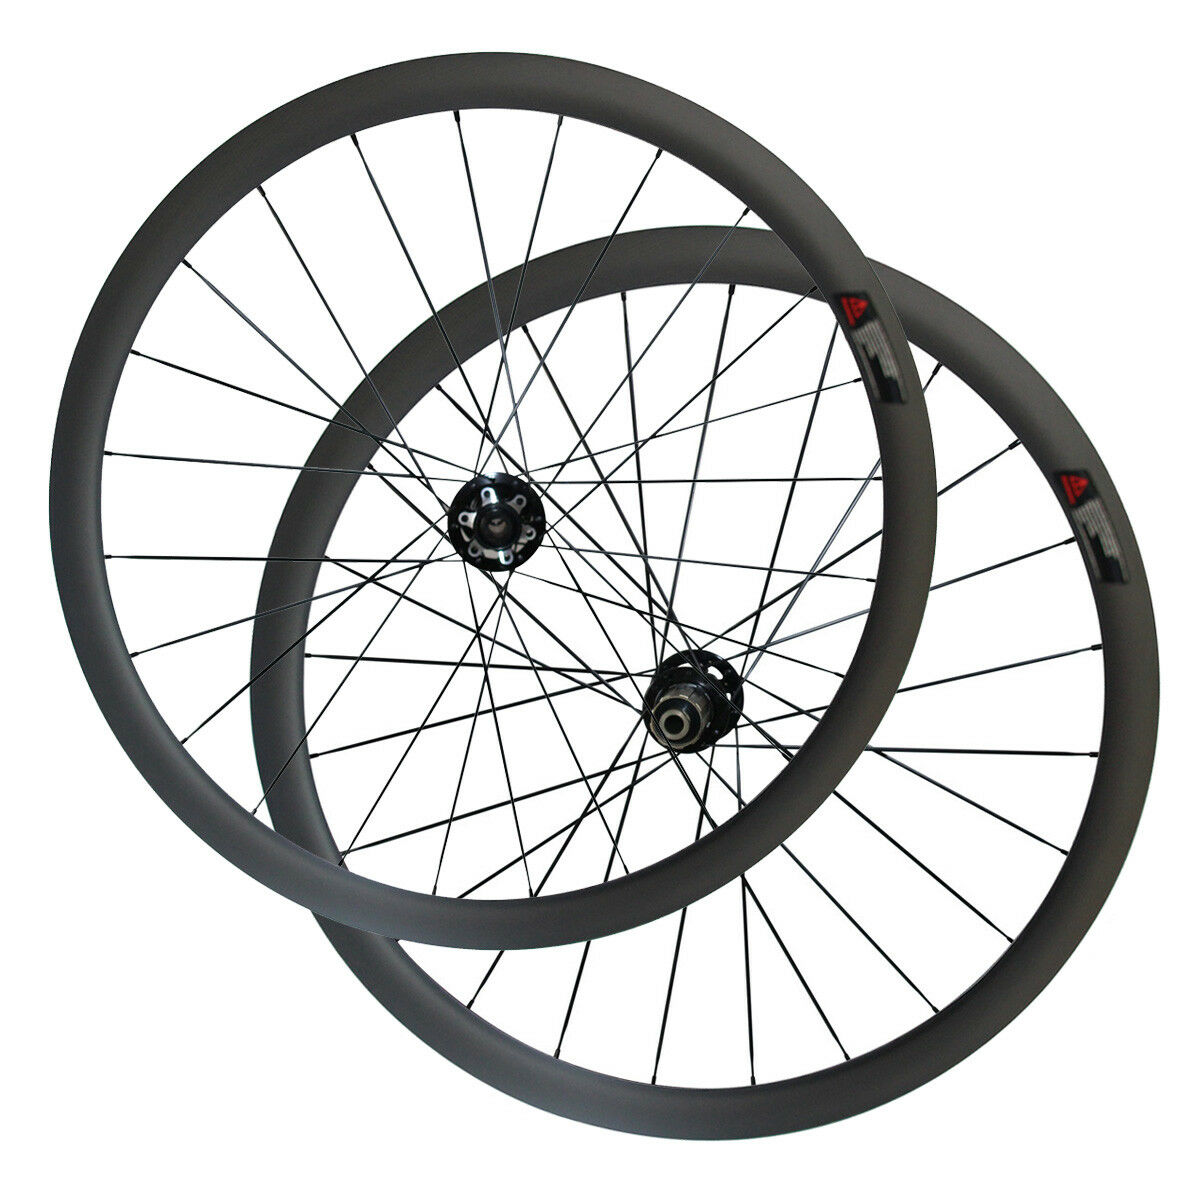 40mm Tubeless 25mm Width Wheelset with D791SB D792SB Disc Brake